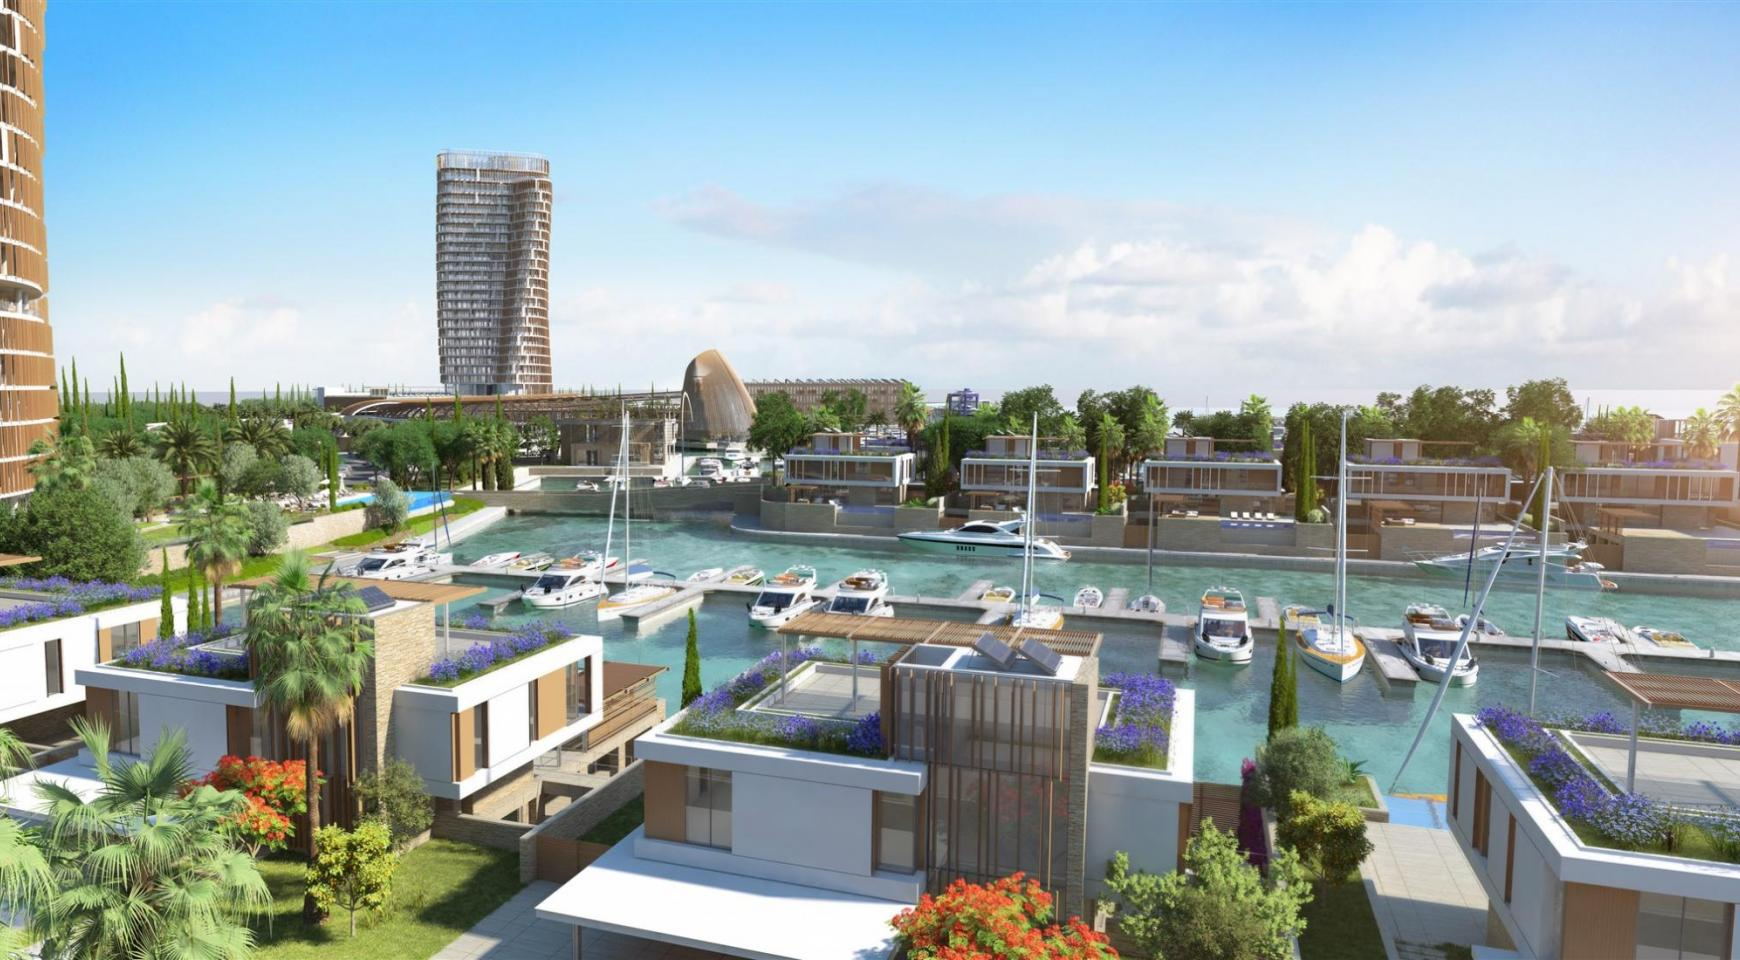 4 Bedroom Apartment in an Exclusive Project by the Sea - 3